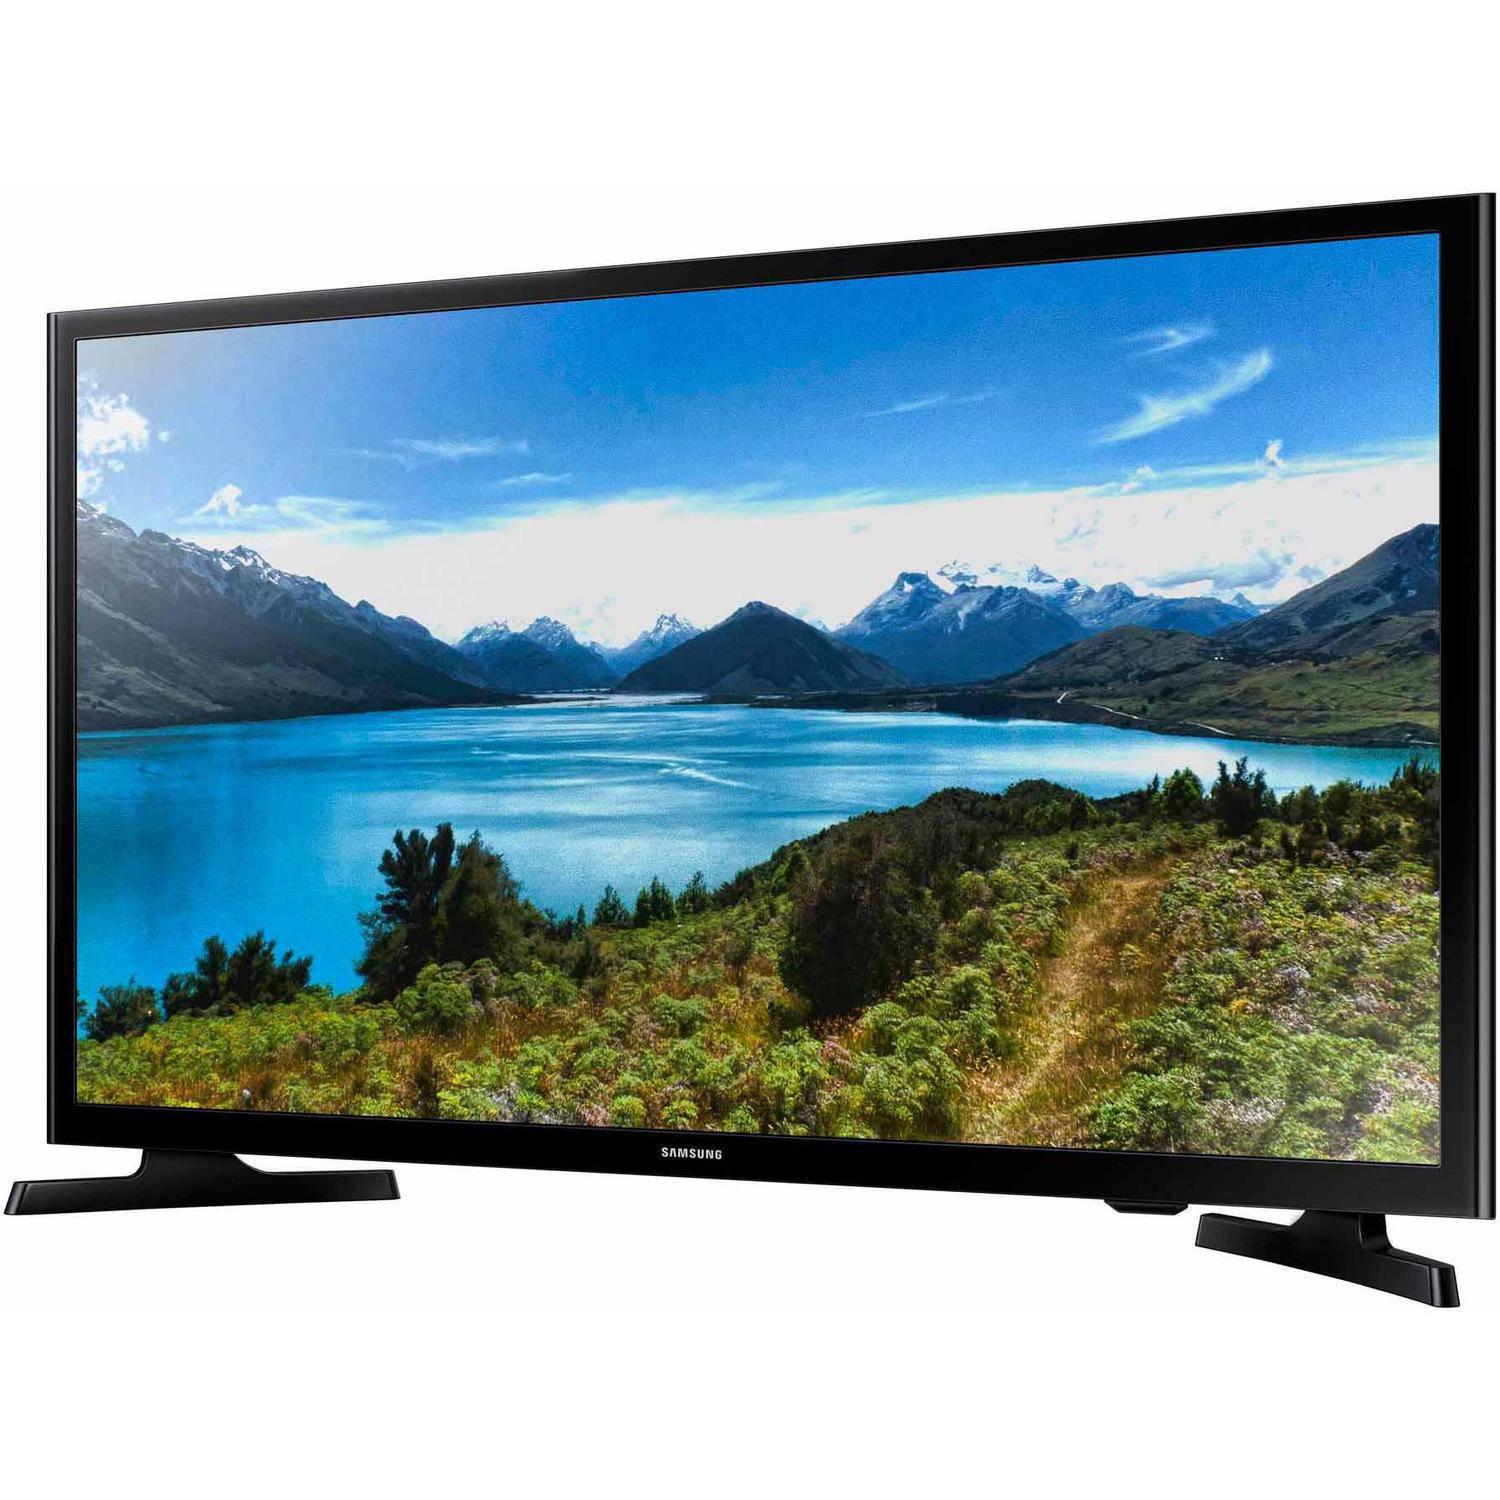 "Refurbished Samsung 32"" Class HD (720P) LED TV (UN32J400)"